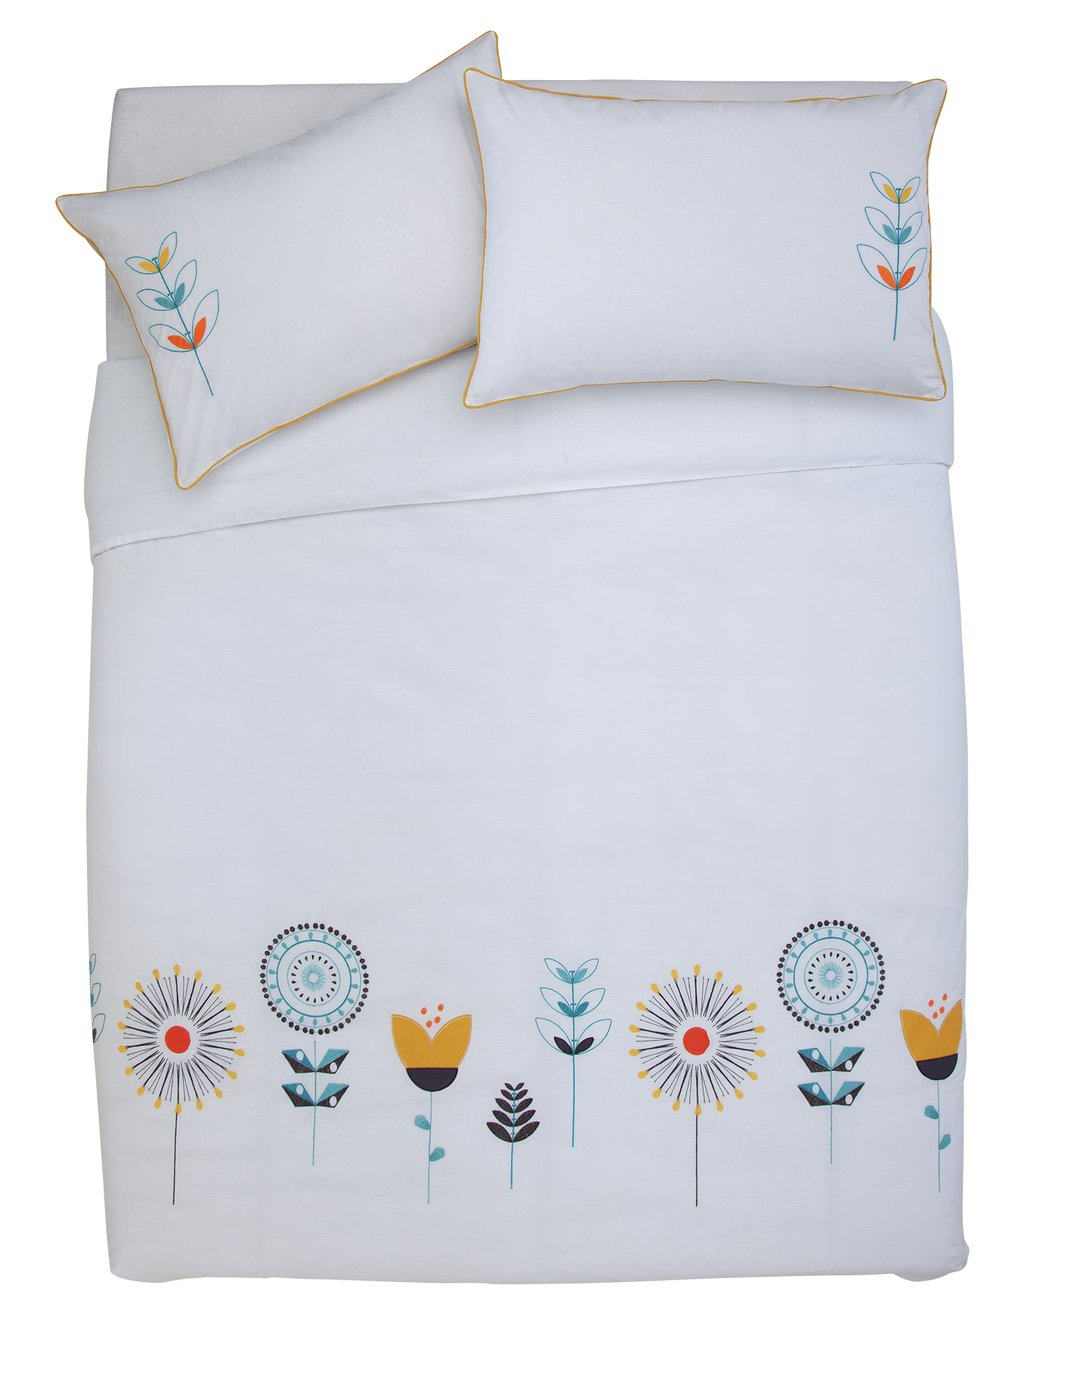 Argos Home Retro Embroidery Bedding Set - Double